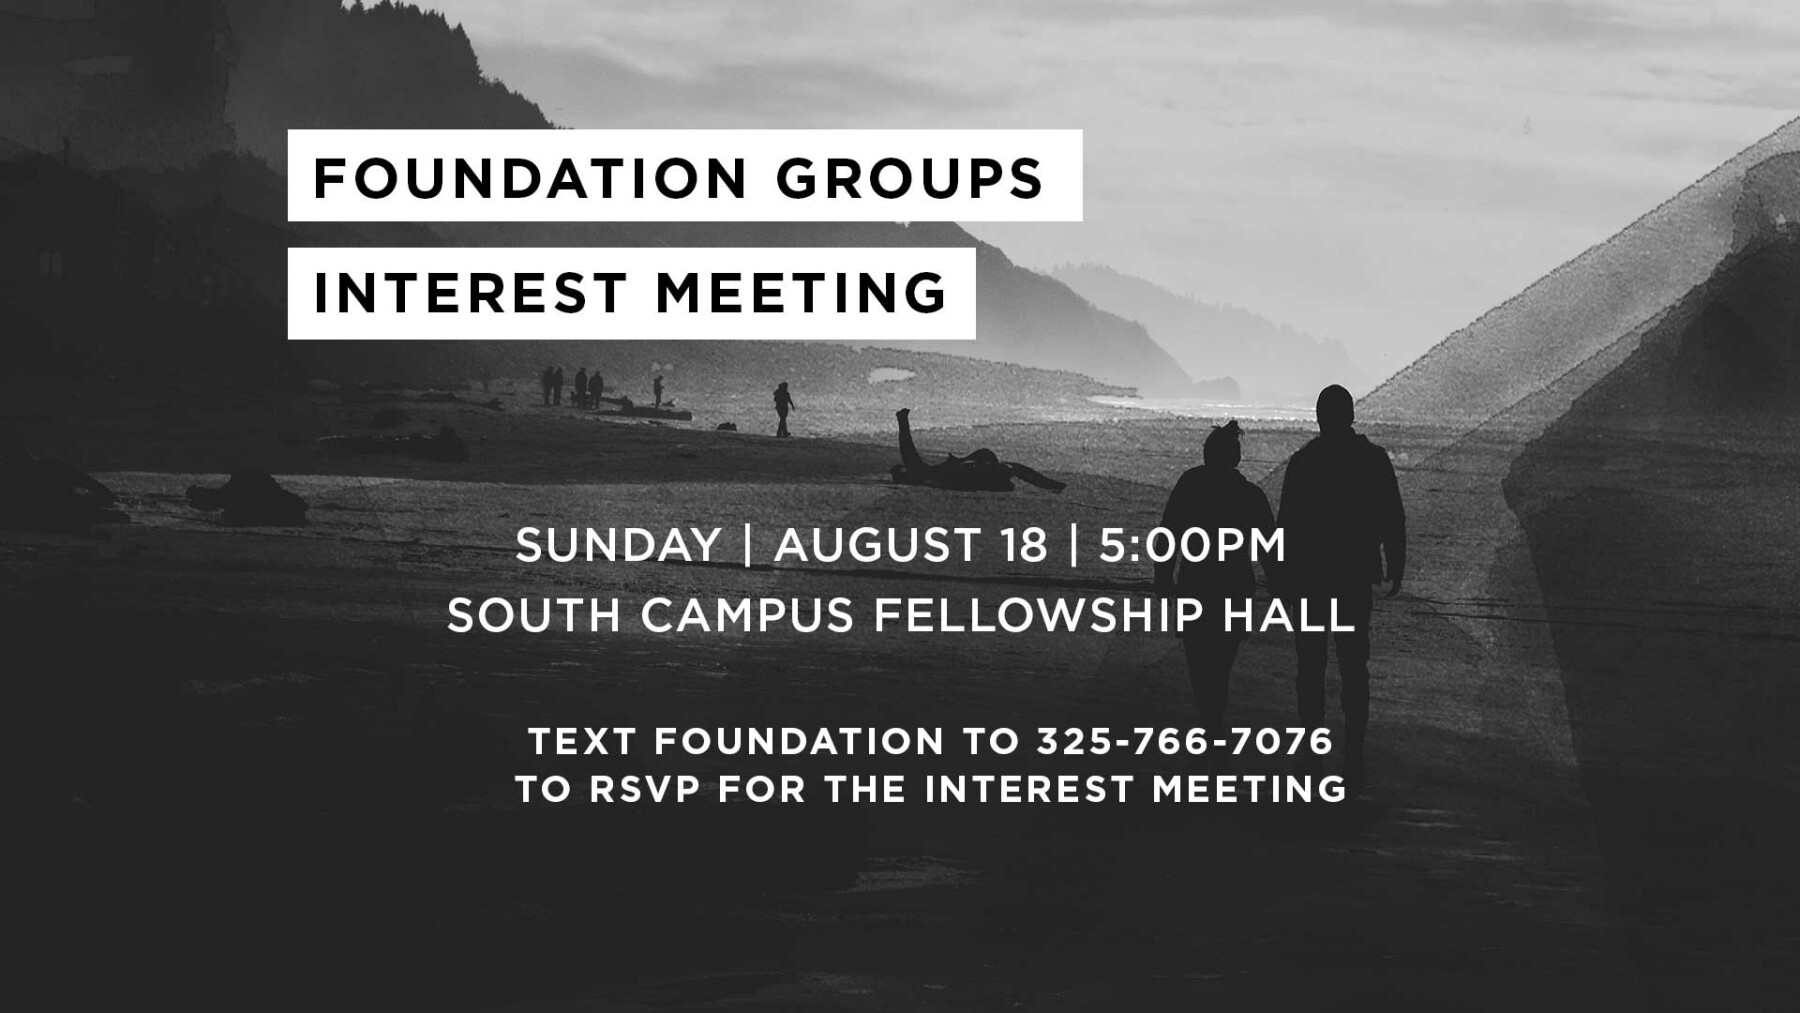 Foundation Groups Interest Meeting